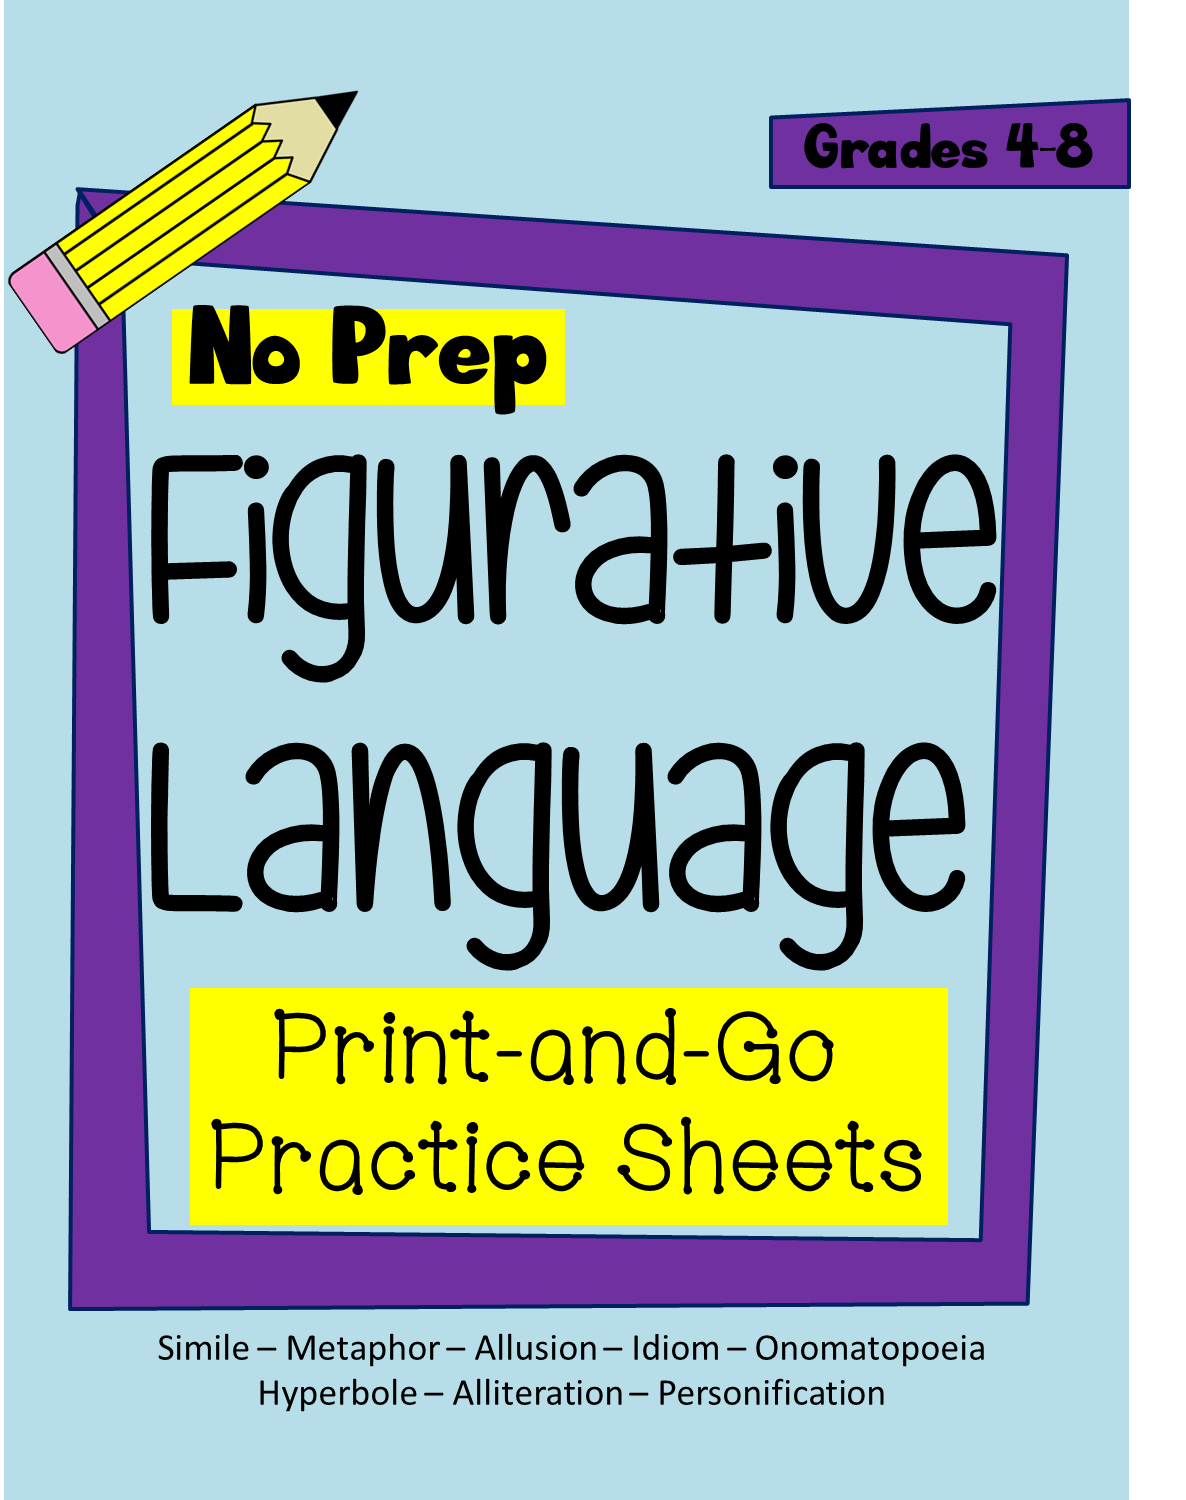 https://www.teacherspayteachers.com/Product/Figurative-Language-Print-and-Go-Practice-Sheets-1838296